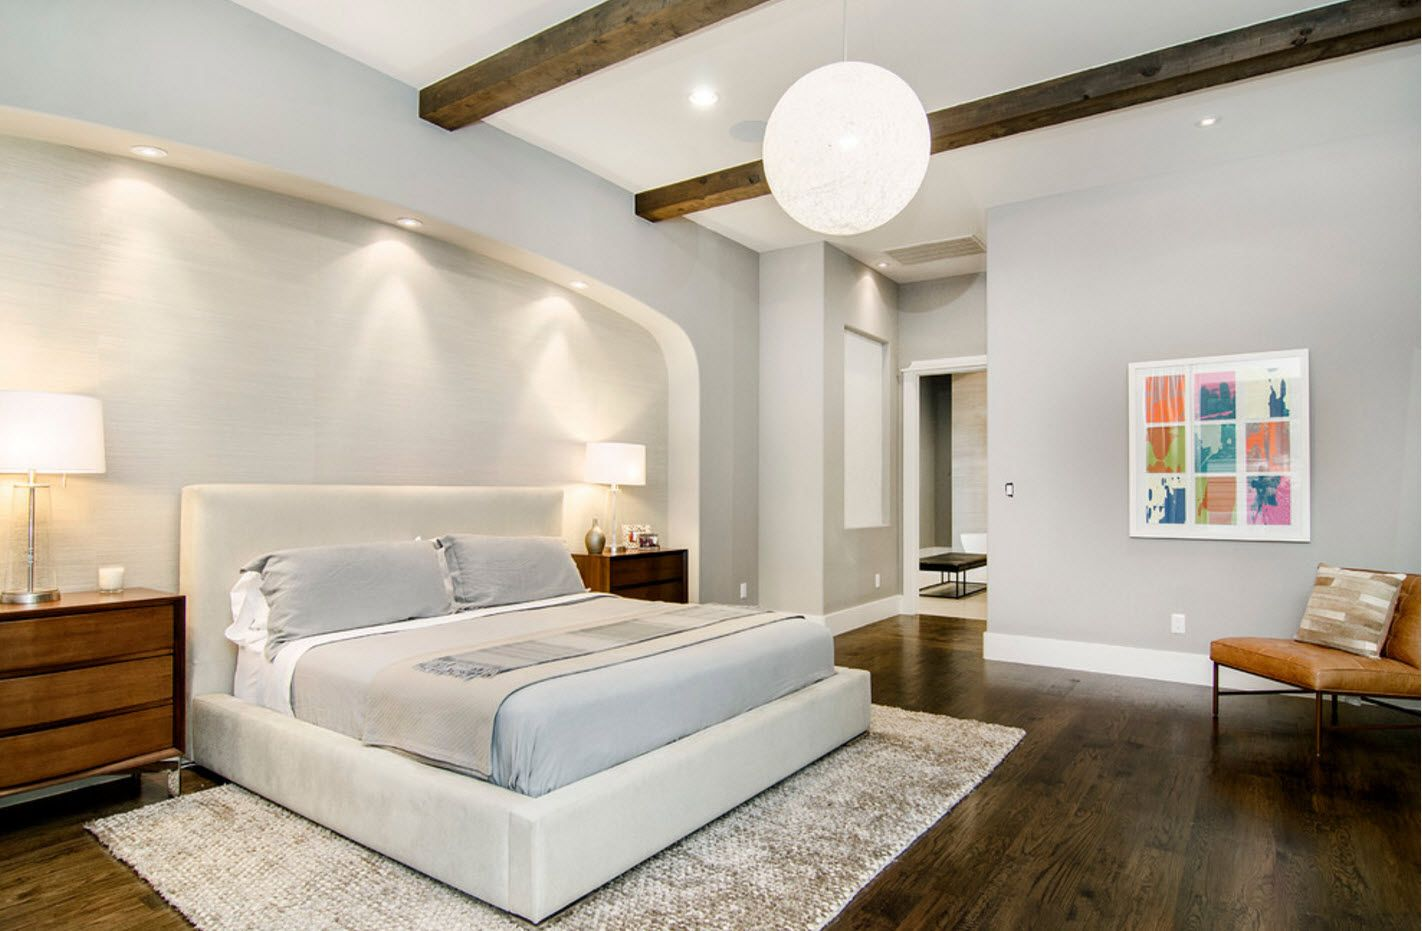 Modern Cottage Interior Design Tips. Trends and Features 2017. Succesful ope layout of the modern light with platform bed and full of light